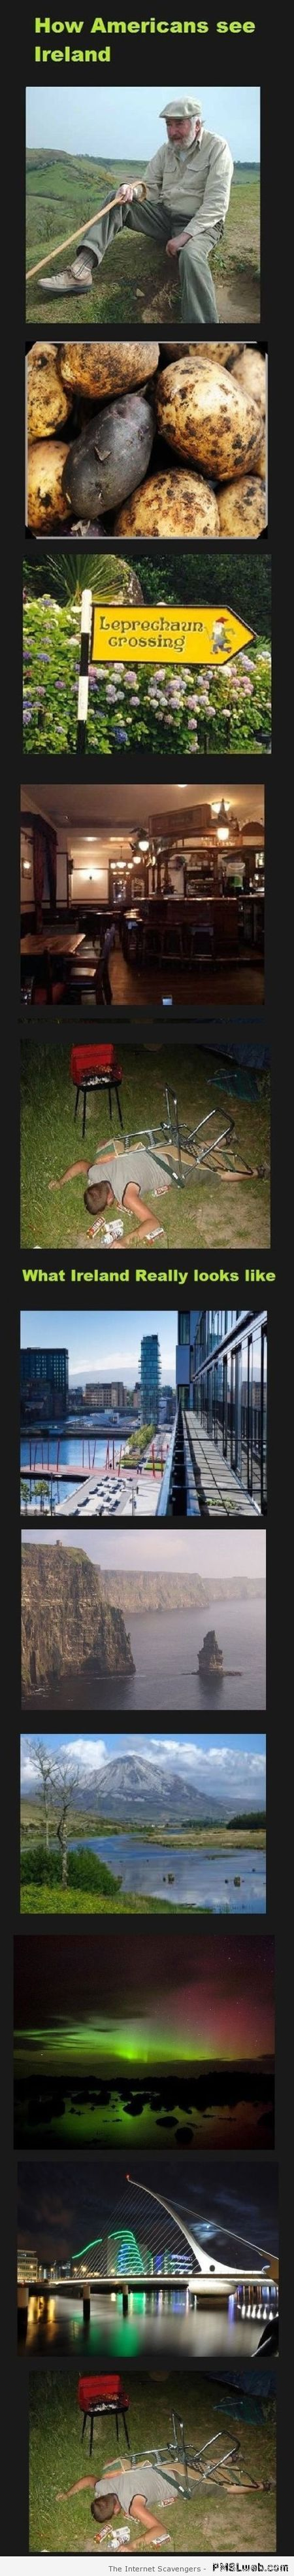 How Americans see Ireland – Monday ROFL at PMSLweb.com